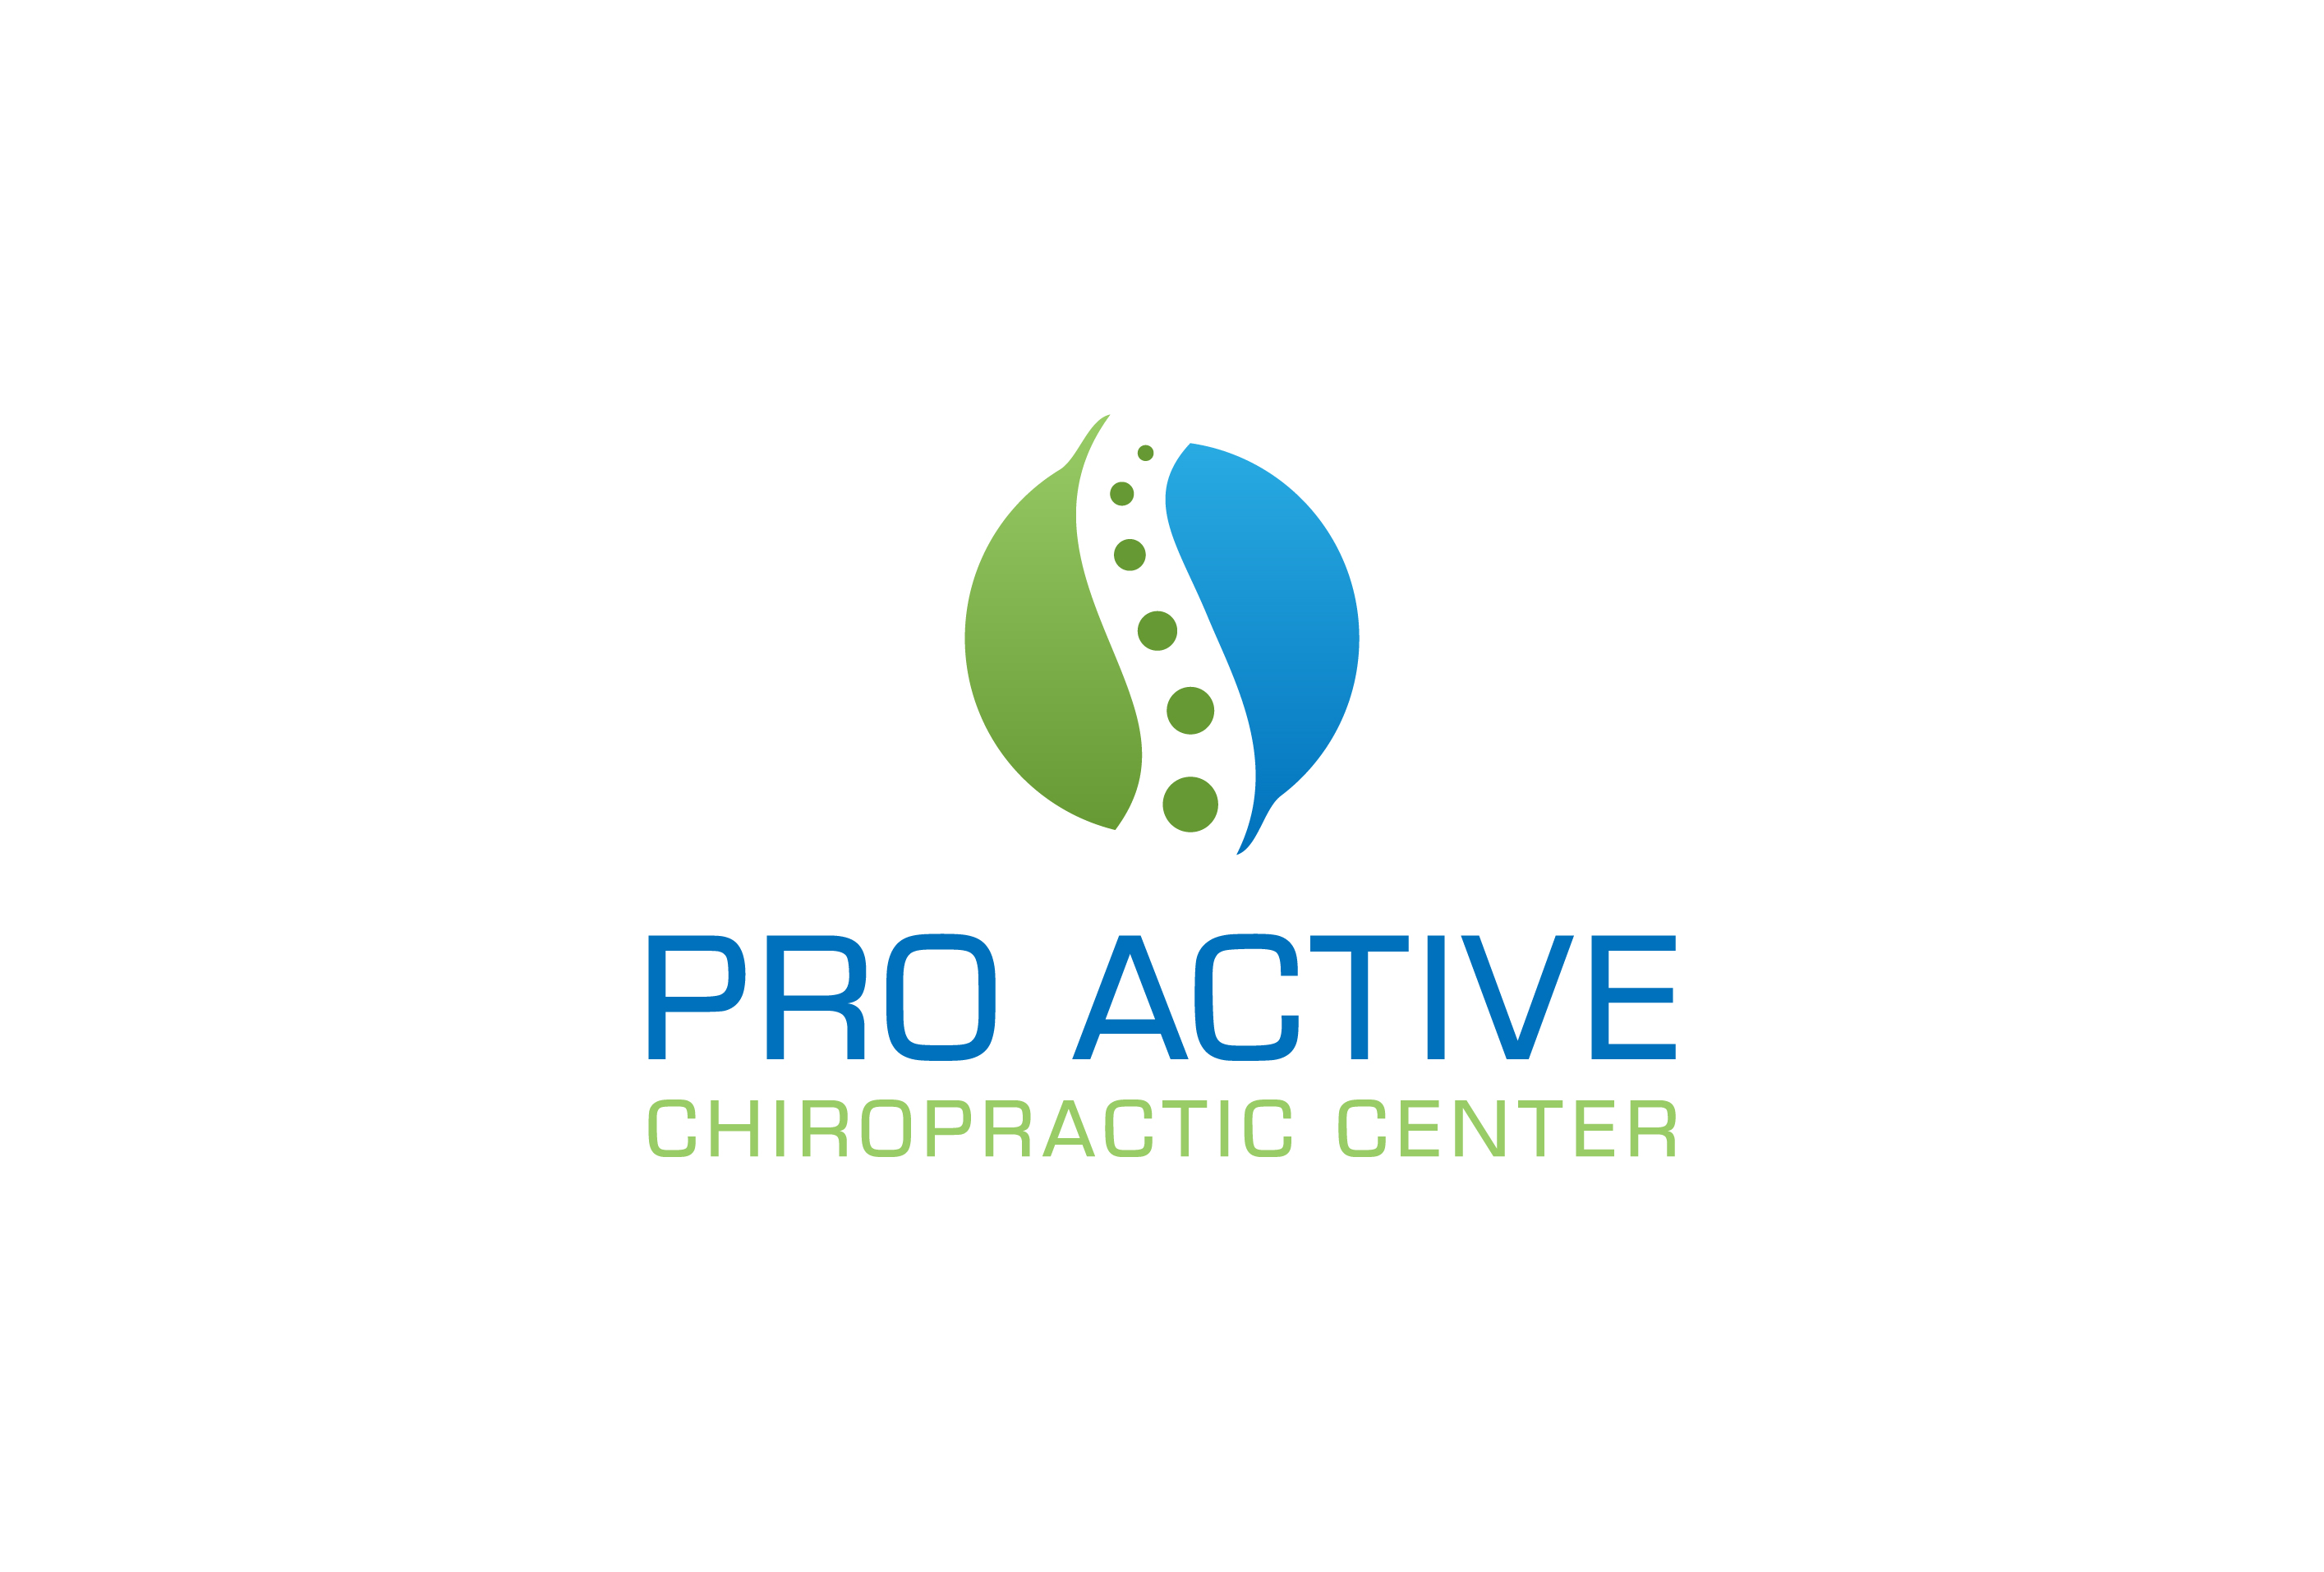 Improve Golf Performance and Treat Golf Related Injuries through Expert Chiropractic Care at Pro Active Chiropractic Center